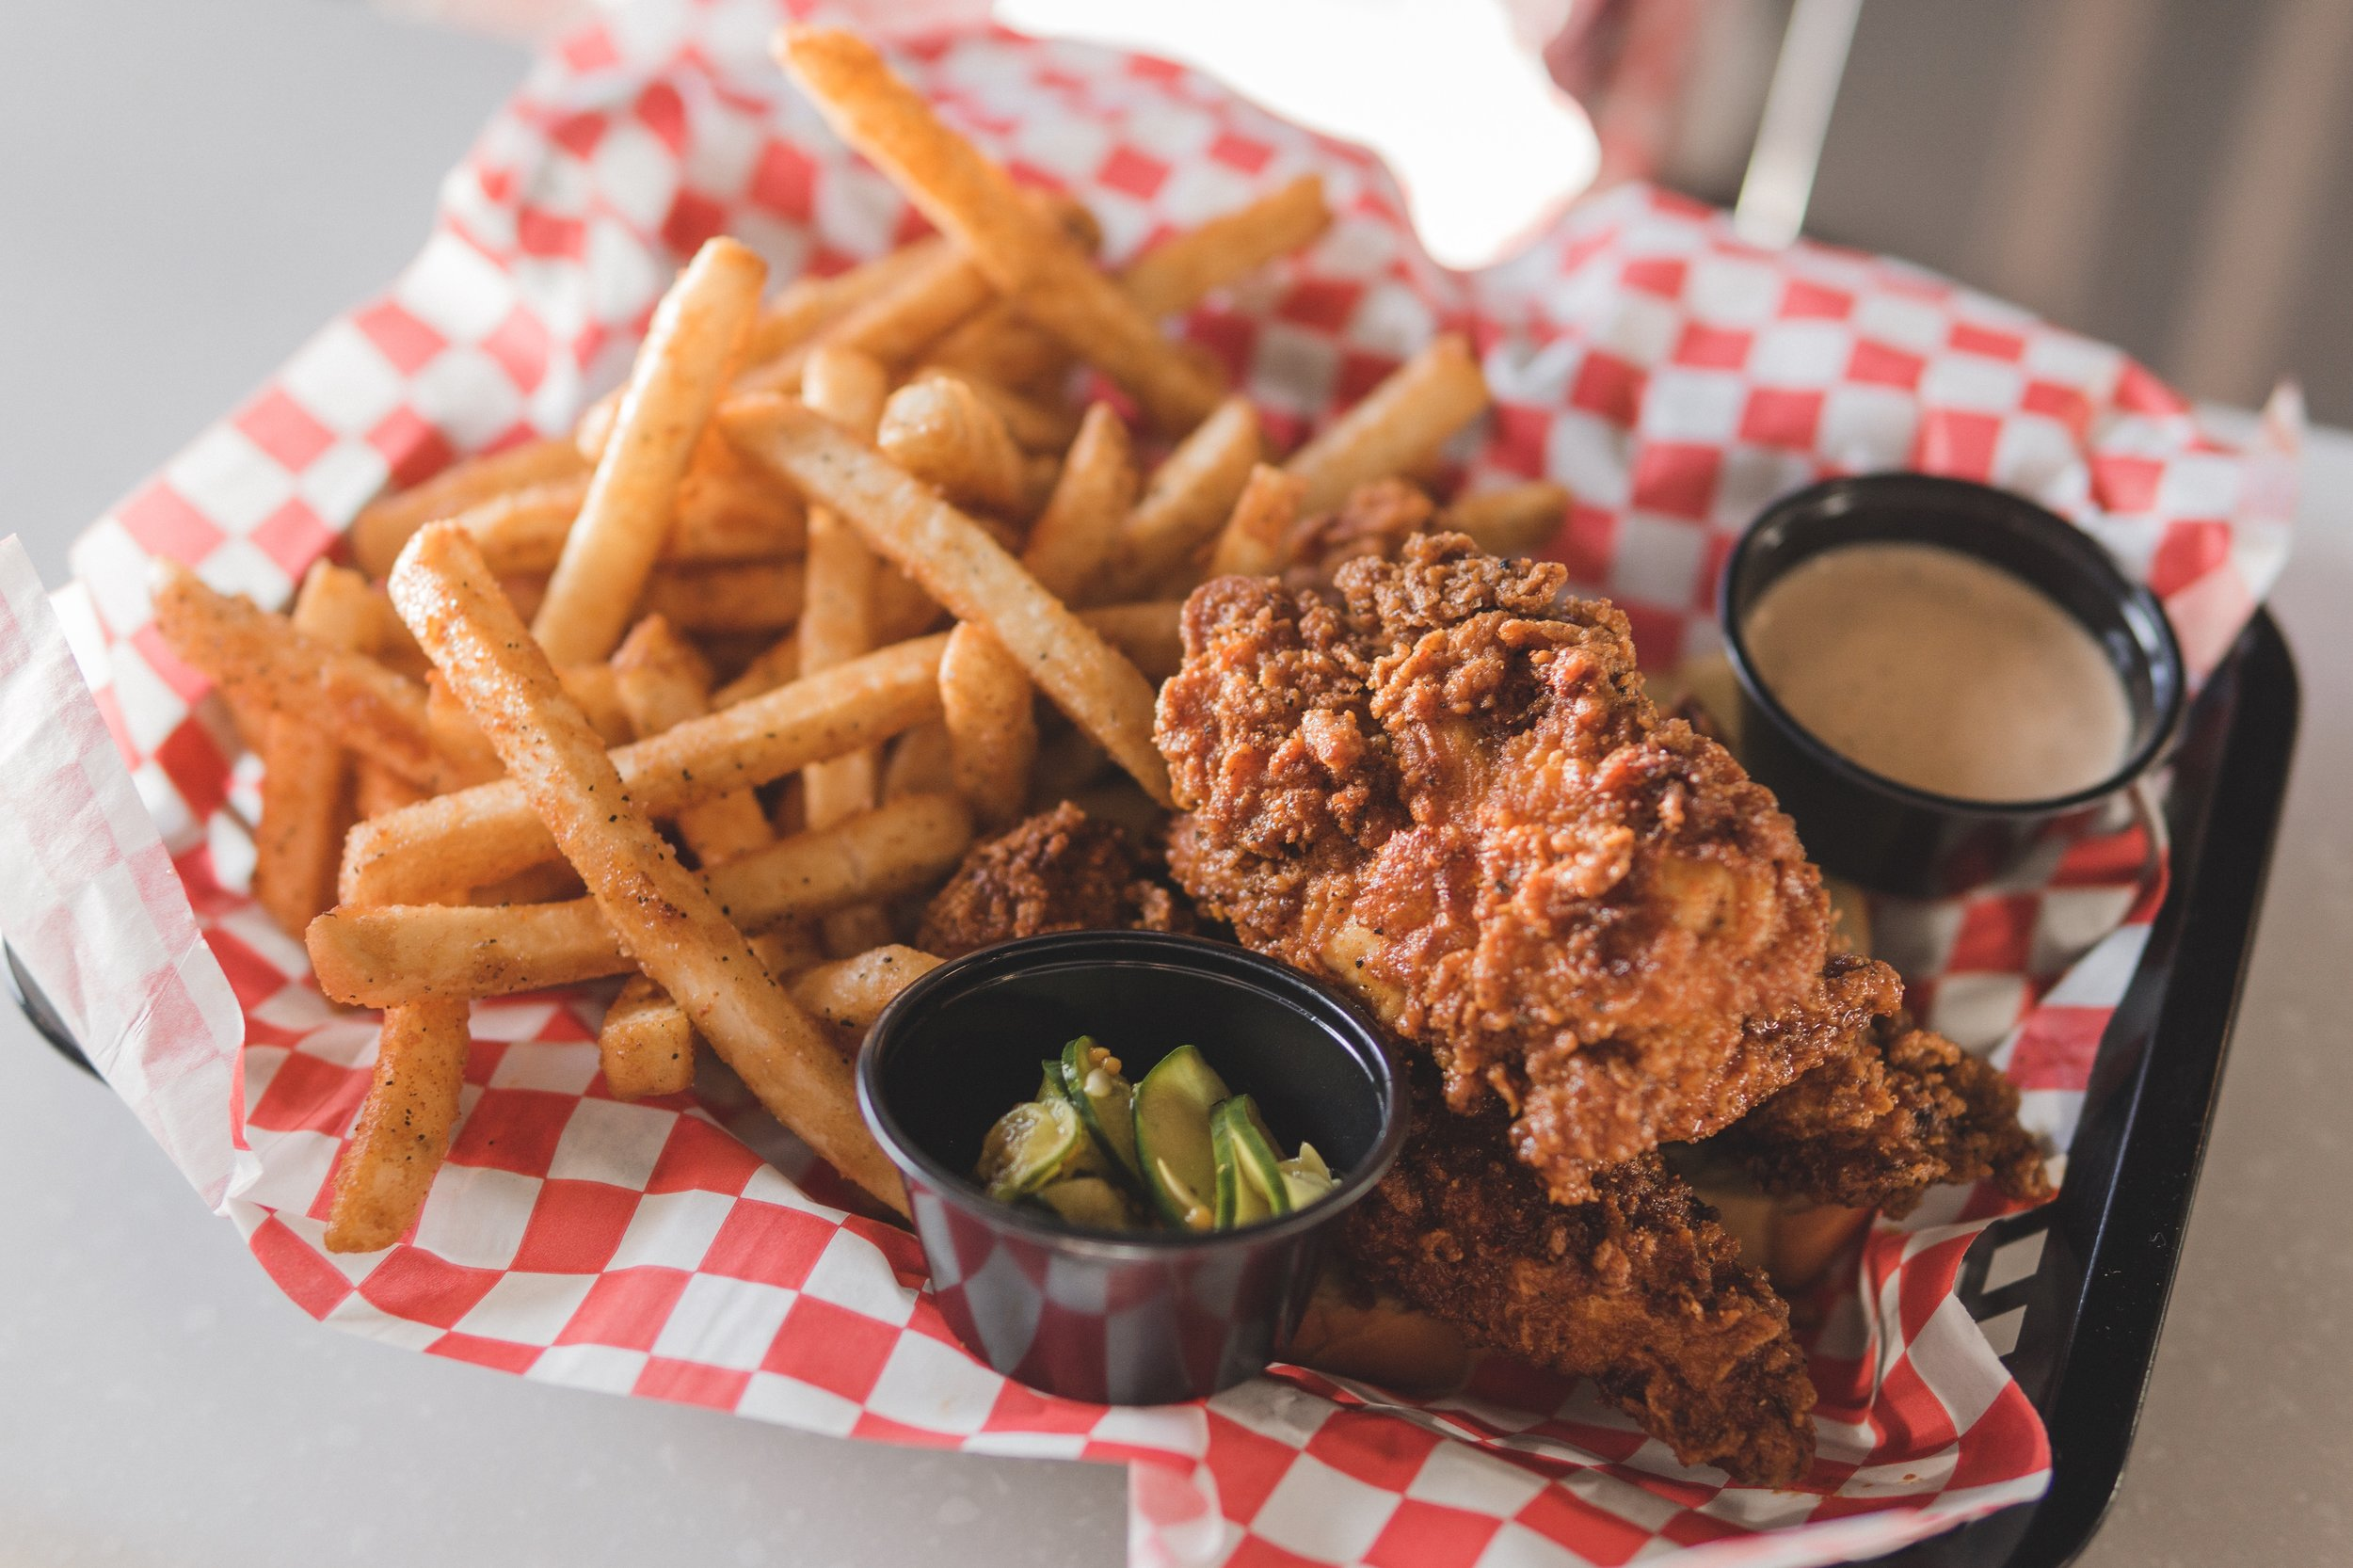 Nashville Hot Tenders, served with crispy fries, King sauce and sweet heat pickles